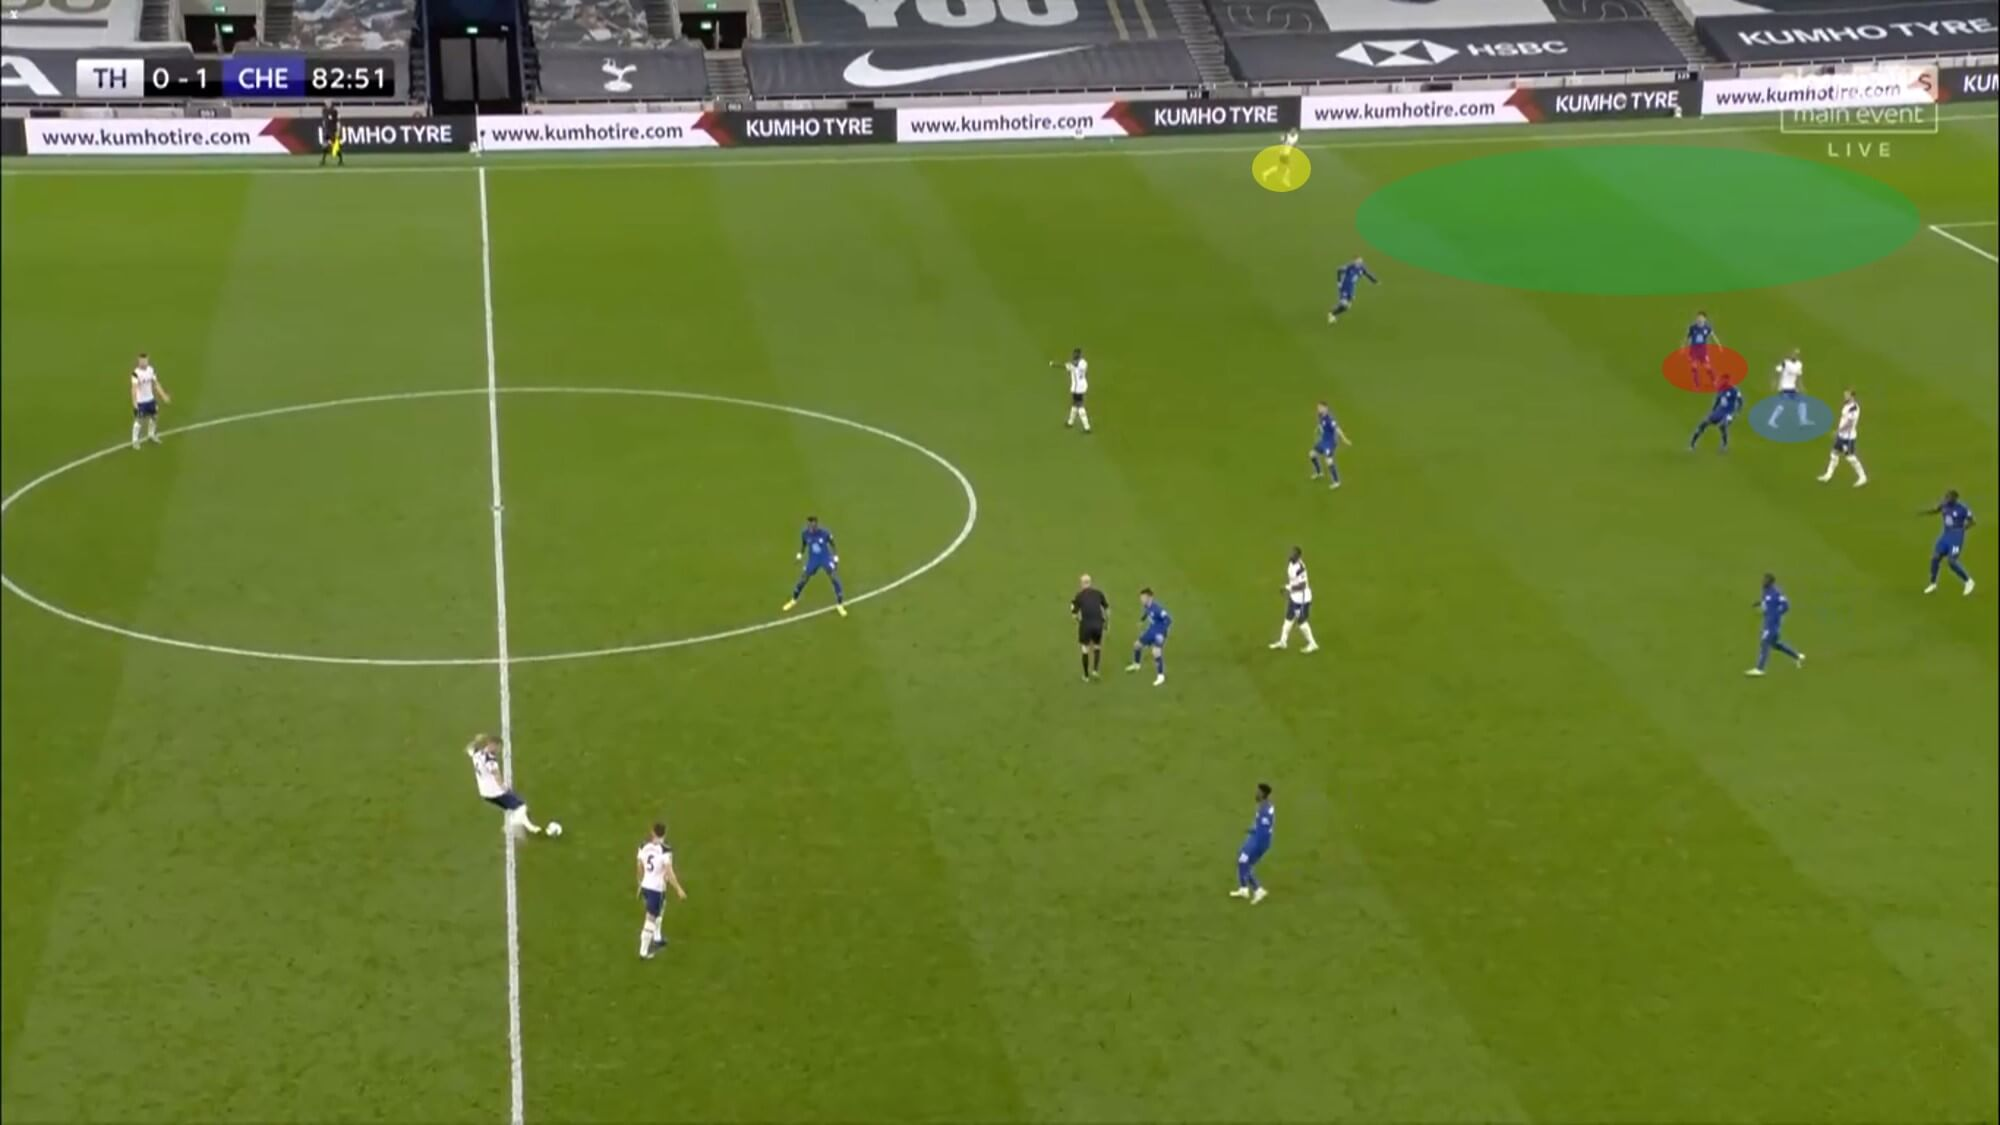 EFL Cup 2020/21: Tottenham vs Chelsea - tactical analysis - tactics